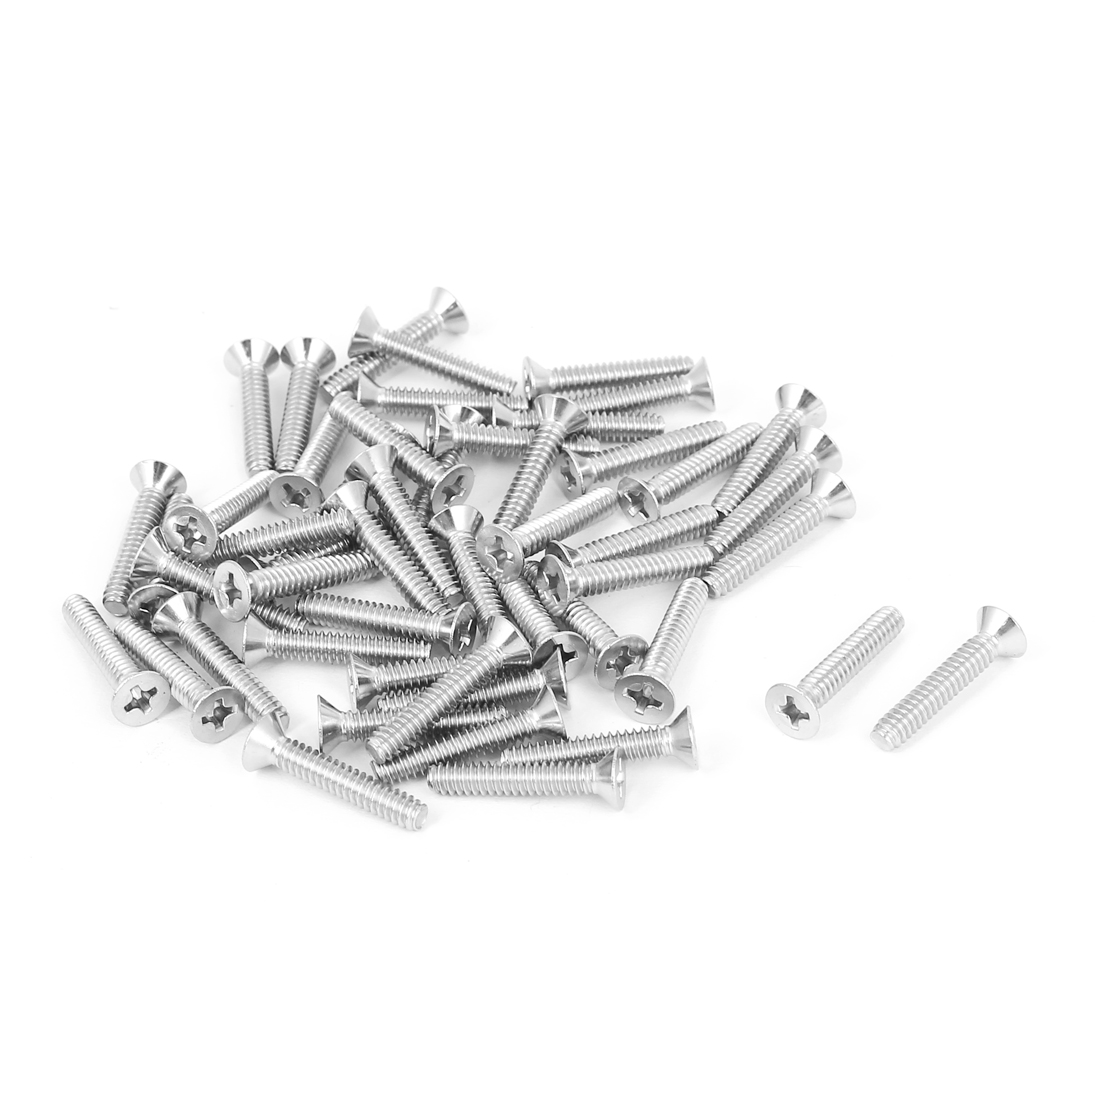 6#-32 304 Stainless Steel Phillips Flat Countersunk Head Screws 50pcs